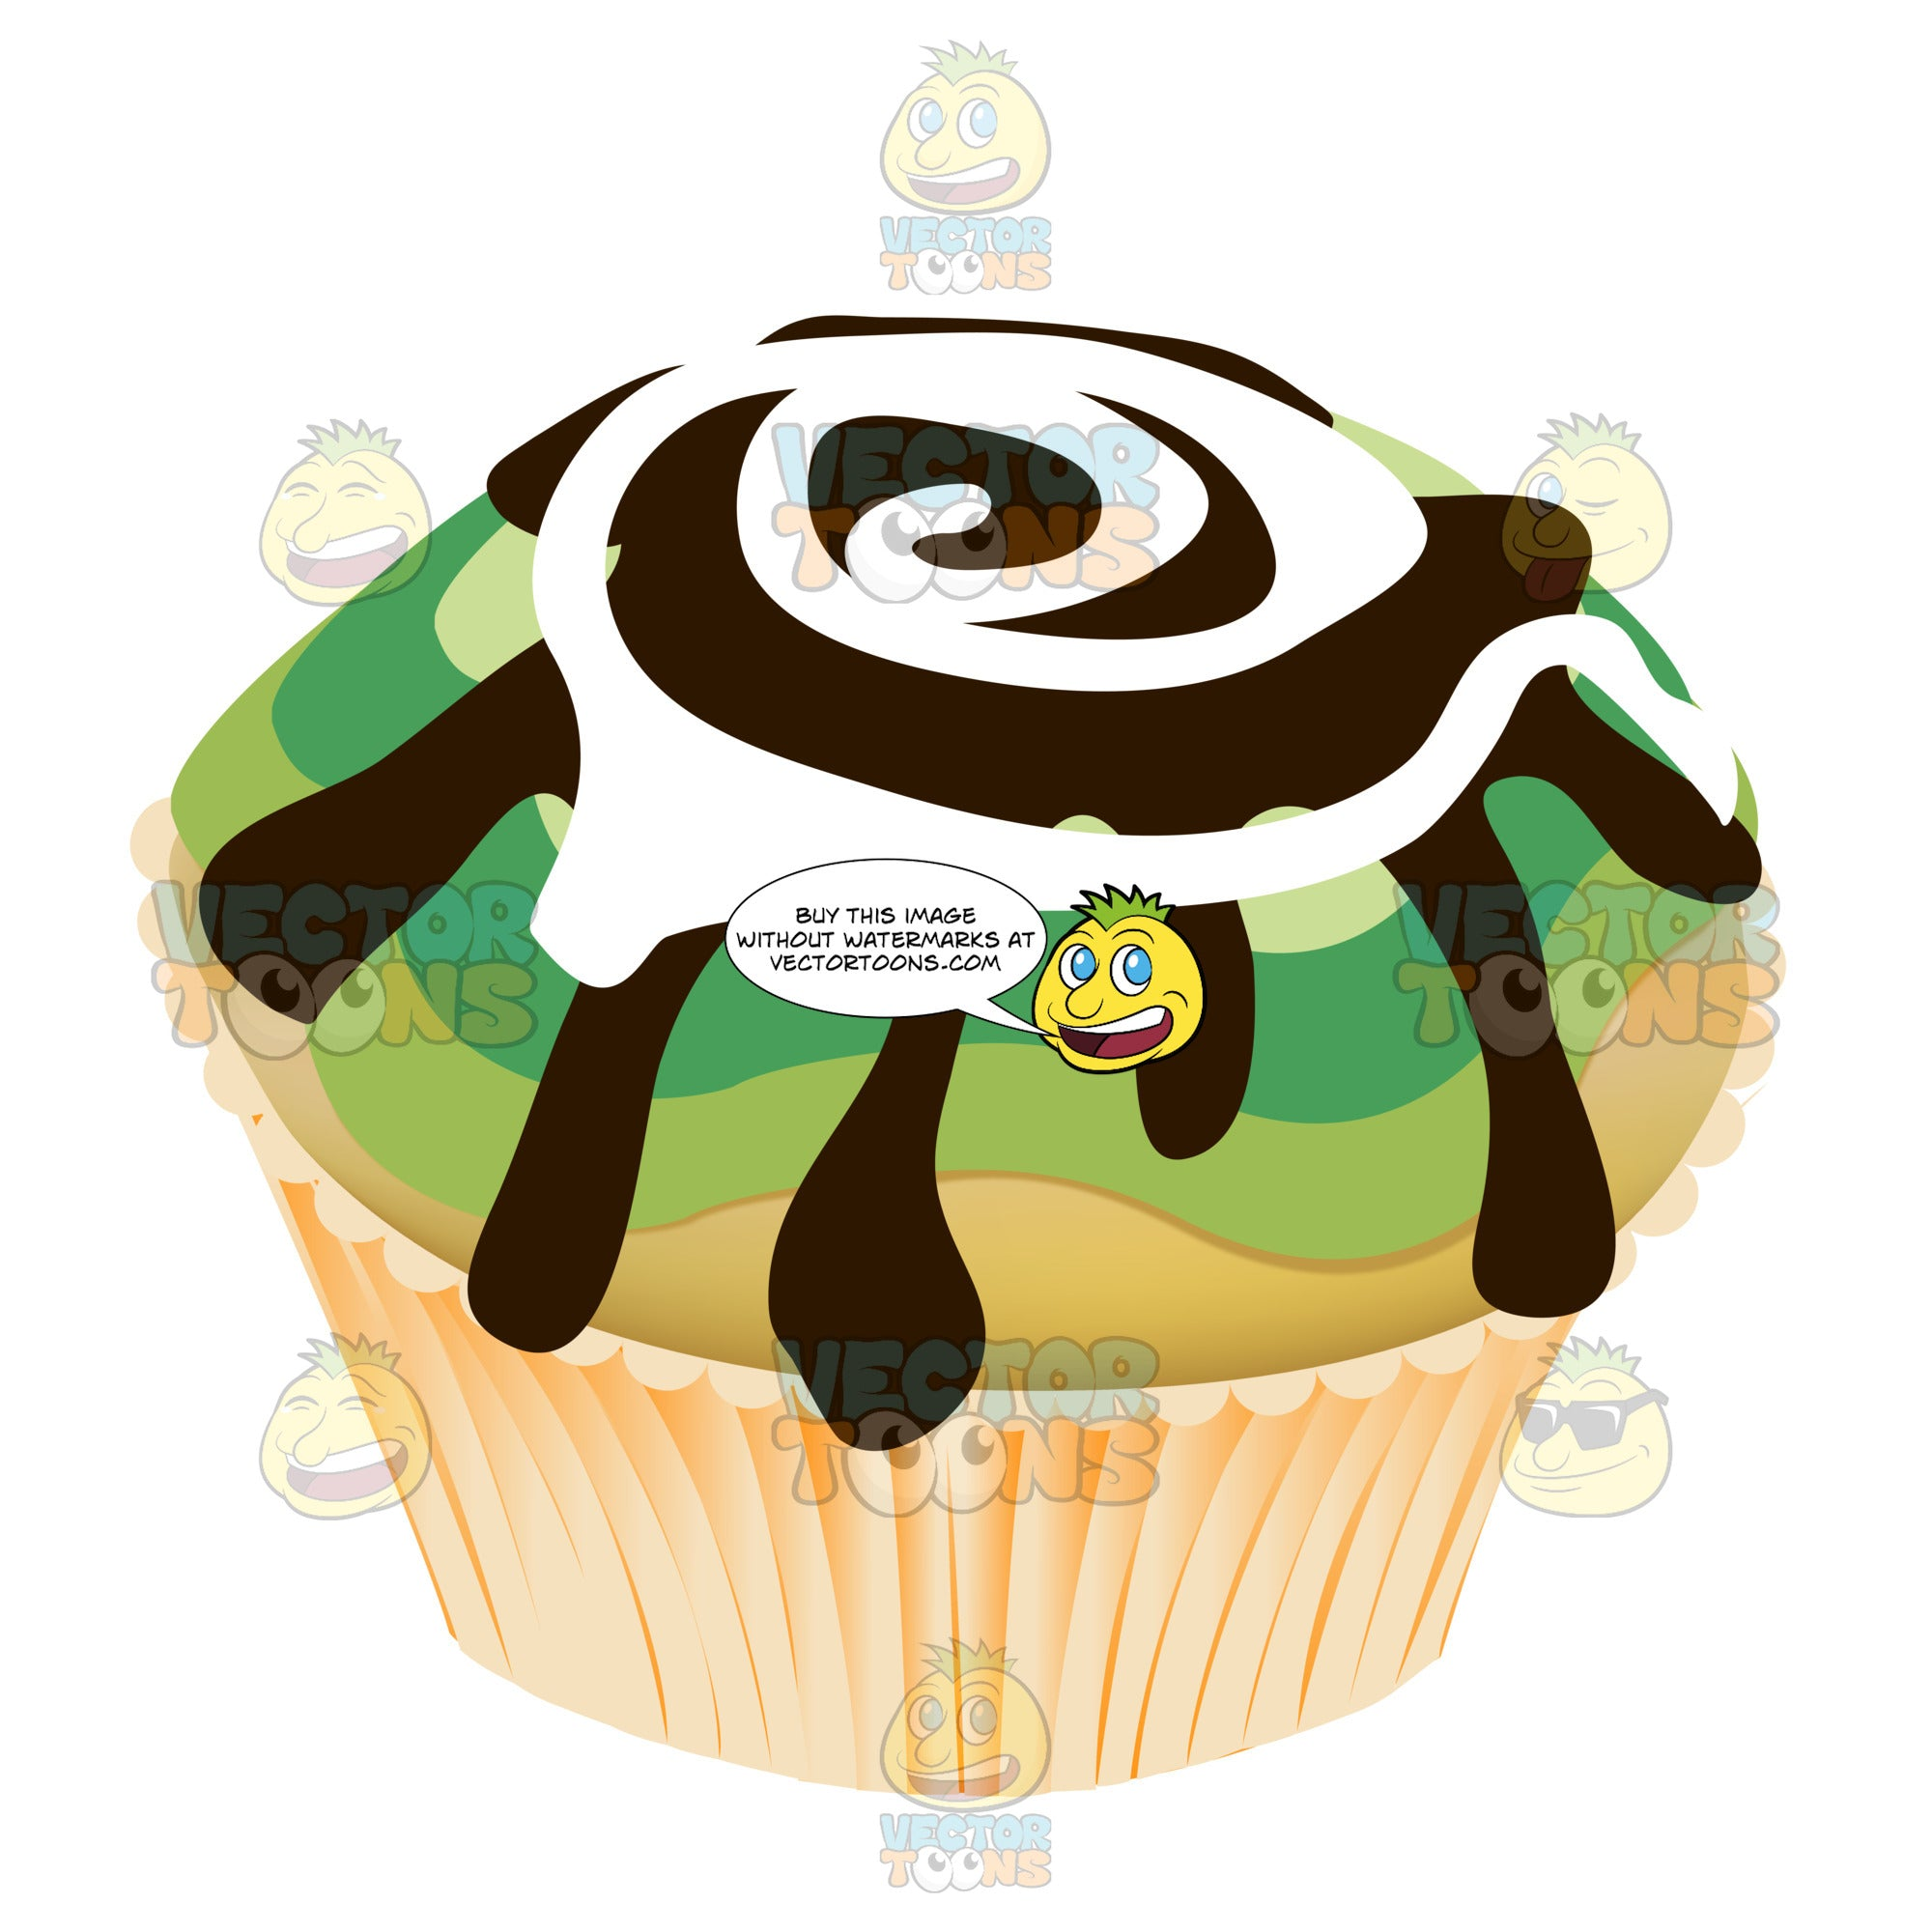 Green Chocolate And White Swirled Frosting Decorated Cupcake